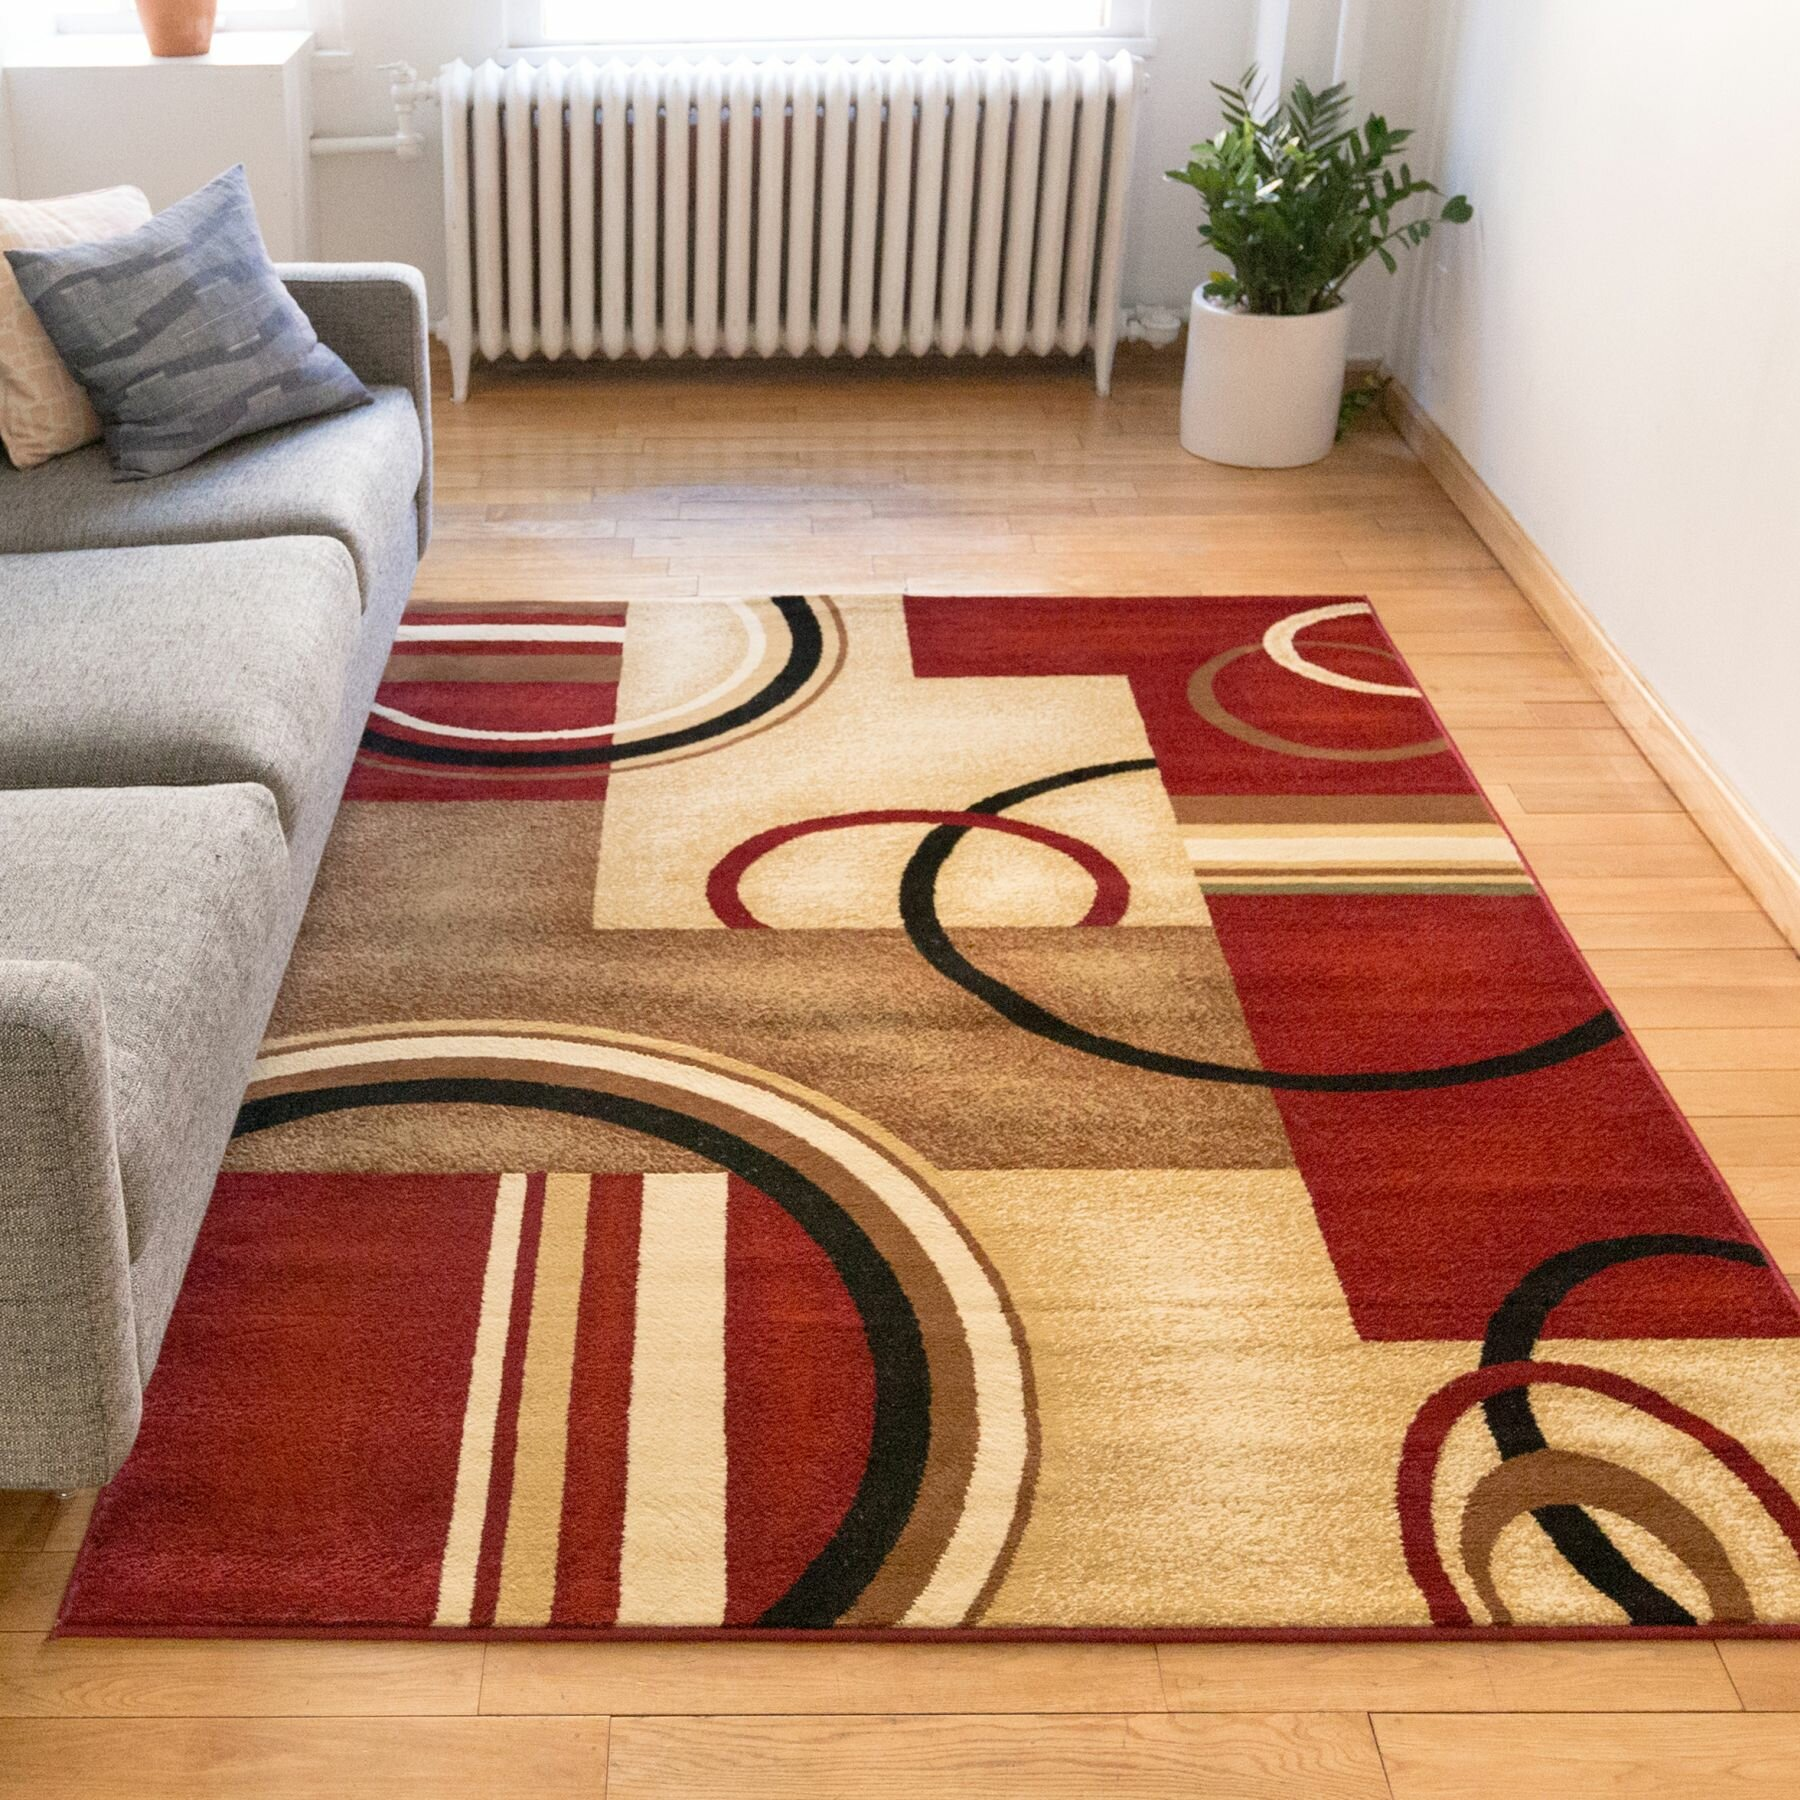 Well Woven Barcla Red Arcs Amp Shapes Area Rug Amp Reviews